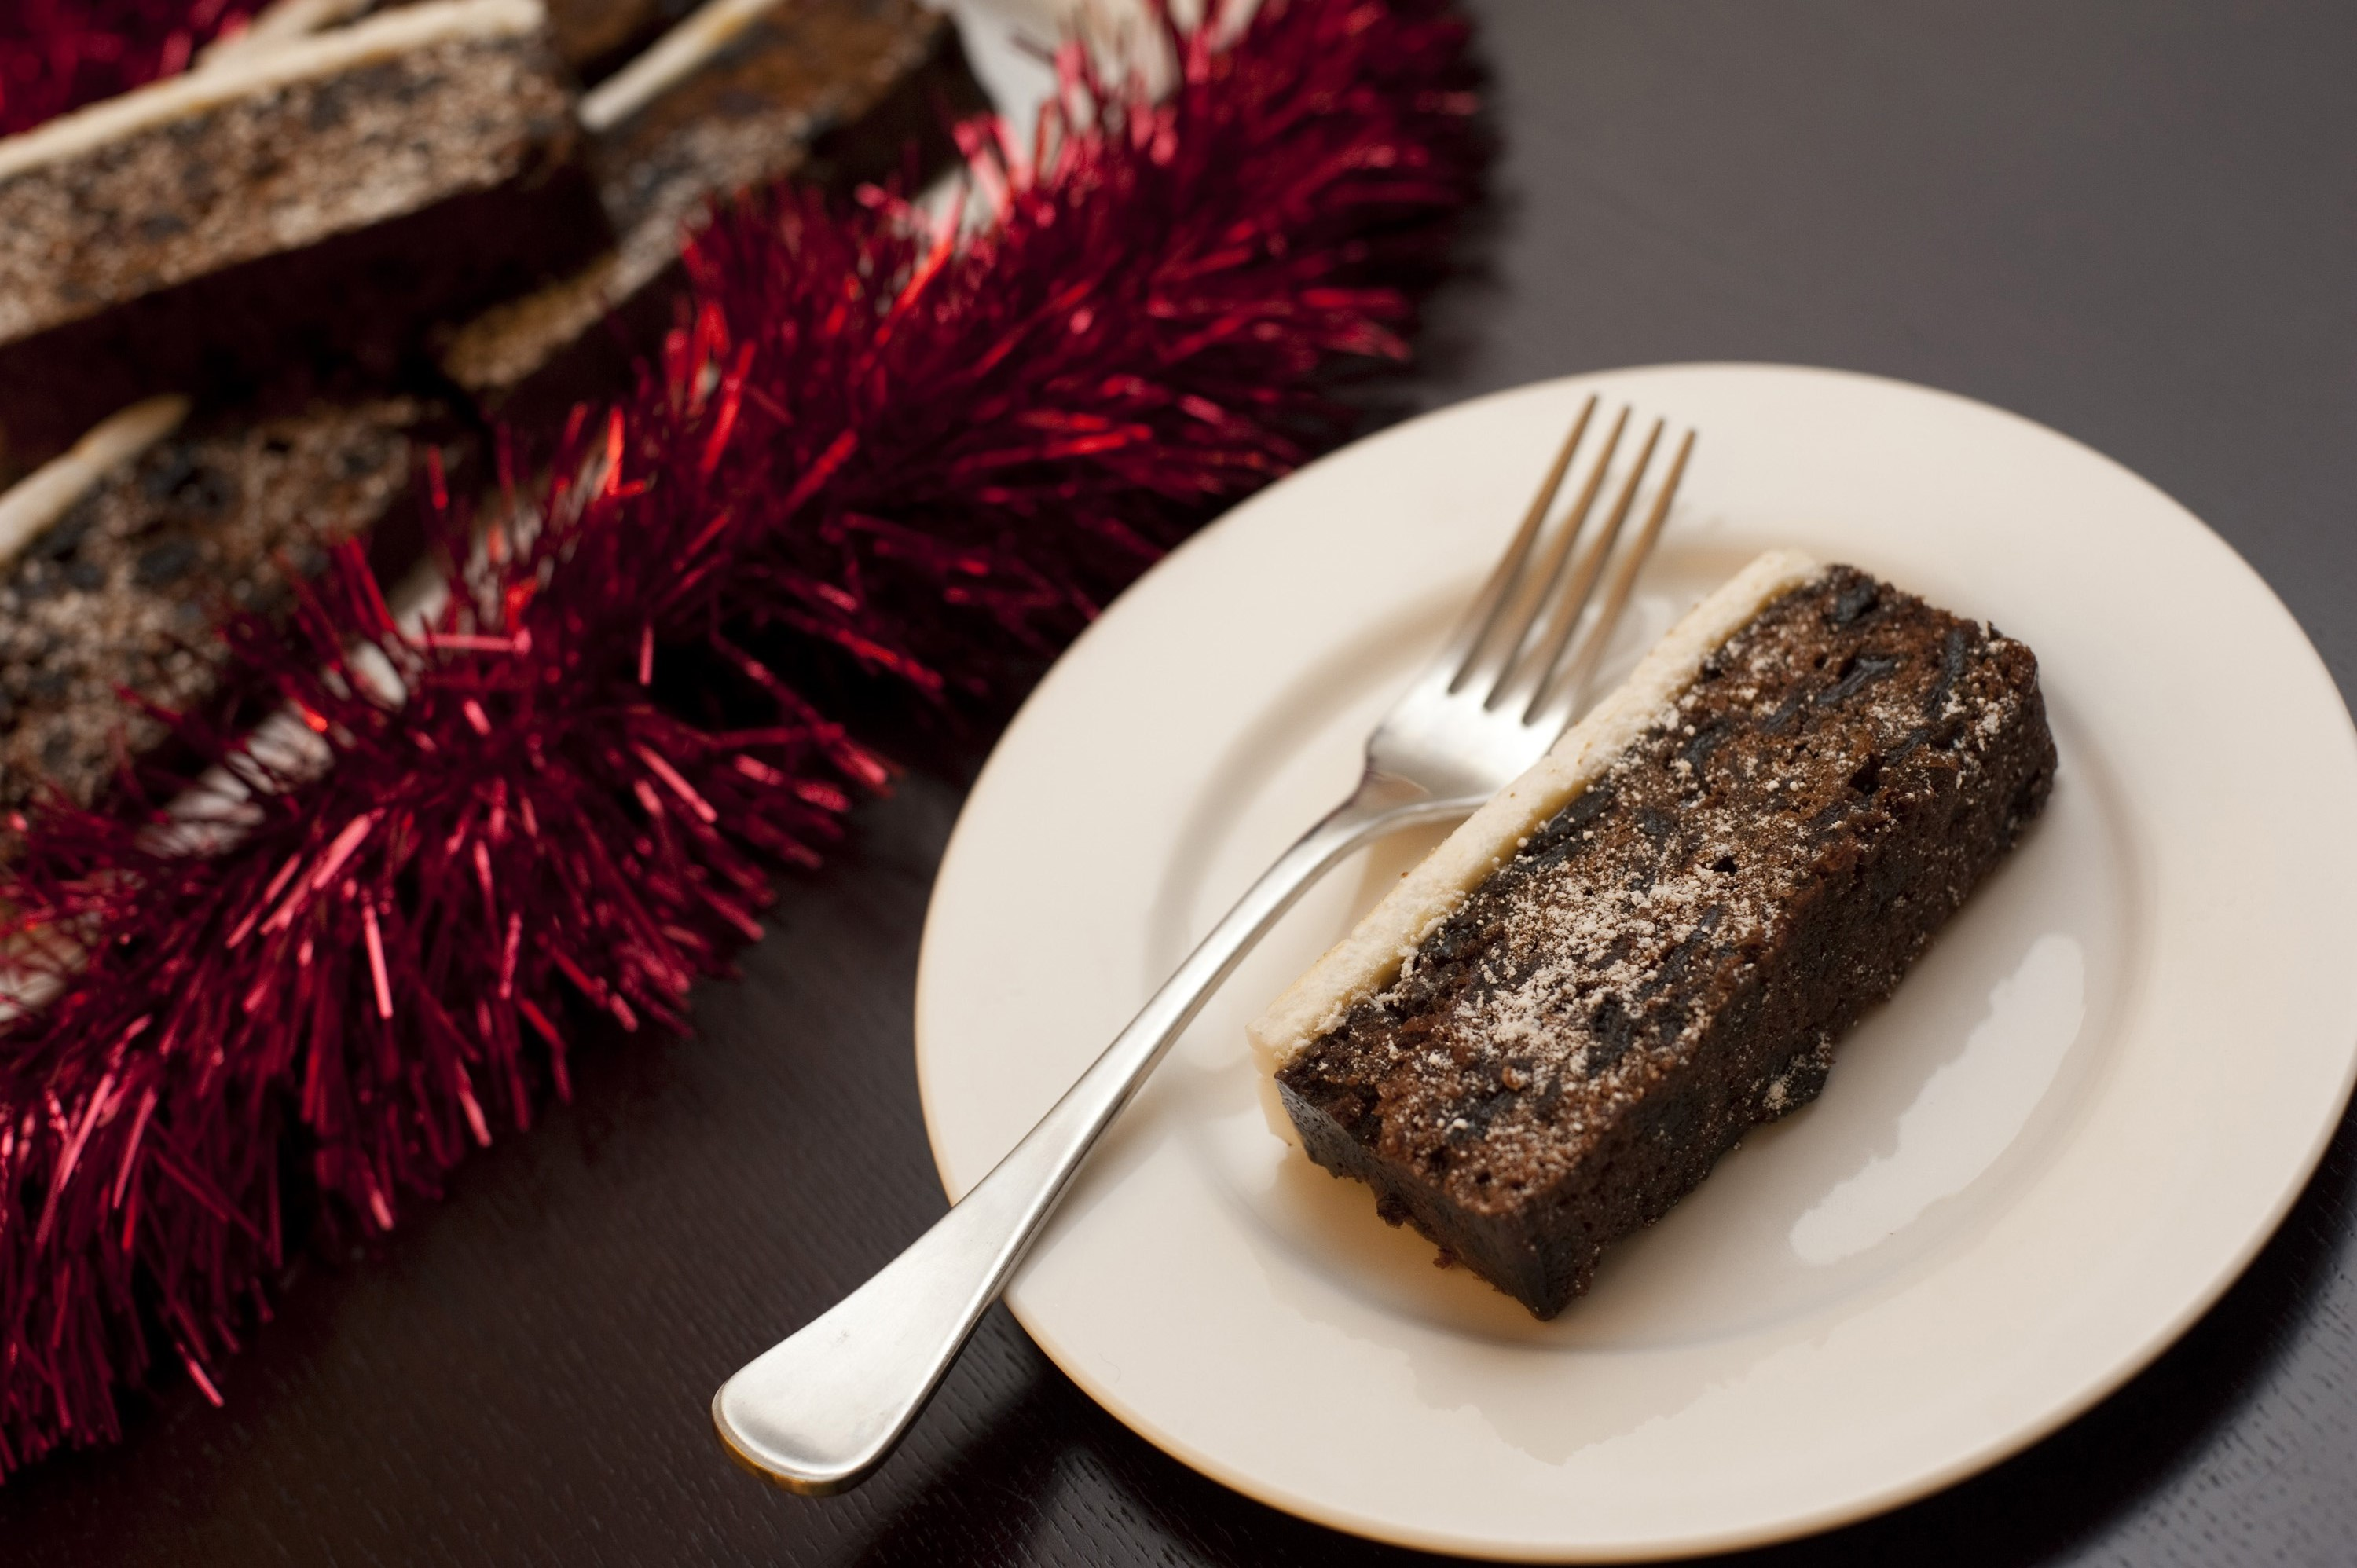 Slice of Christmas fruit cake with a marzipan and almond paste icing served on a plate on a festive table, high angle view